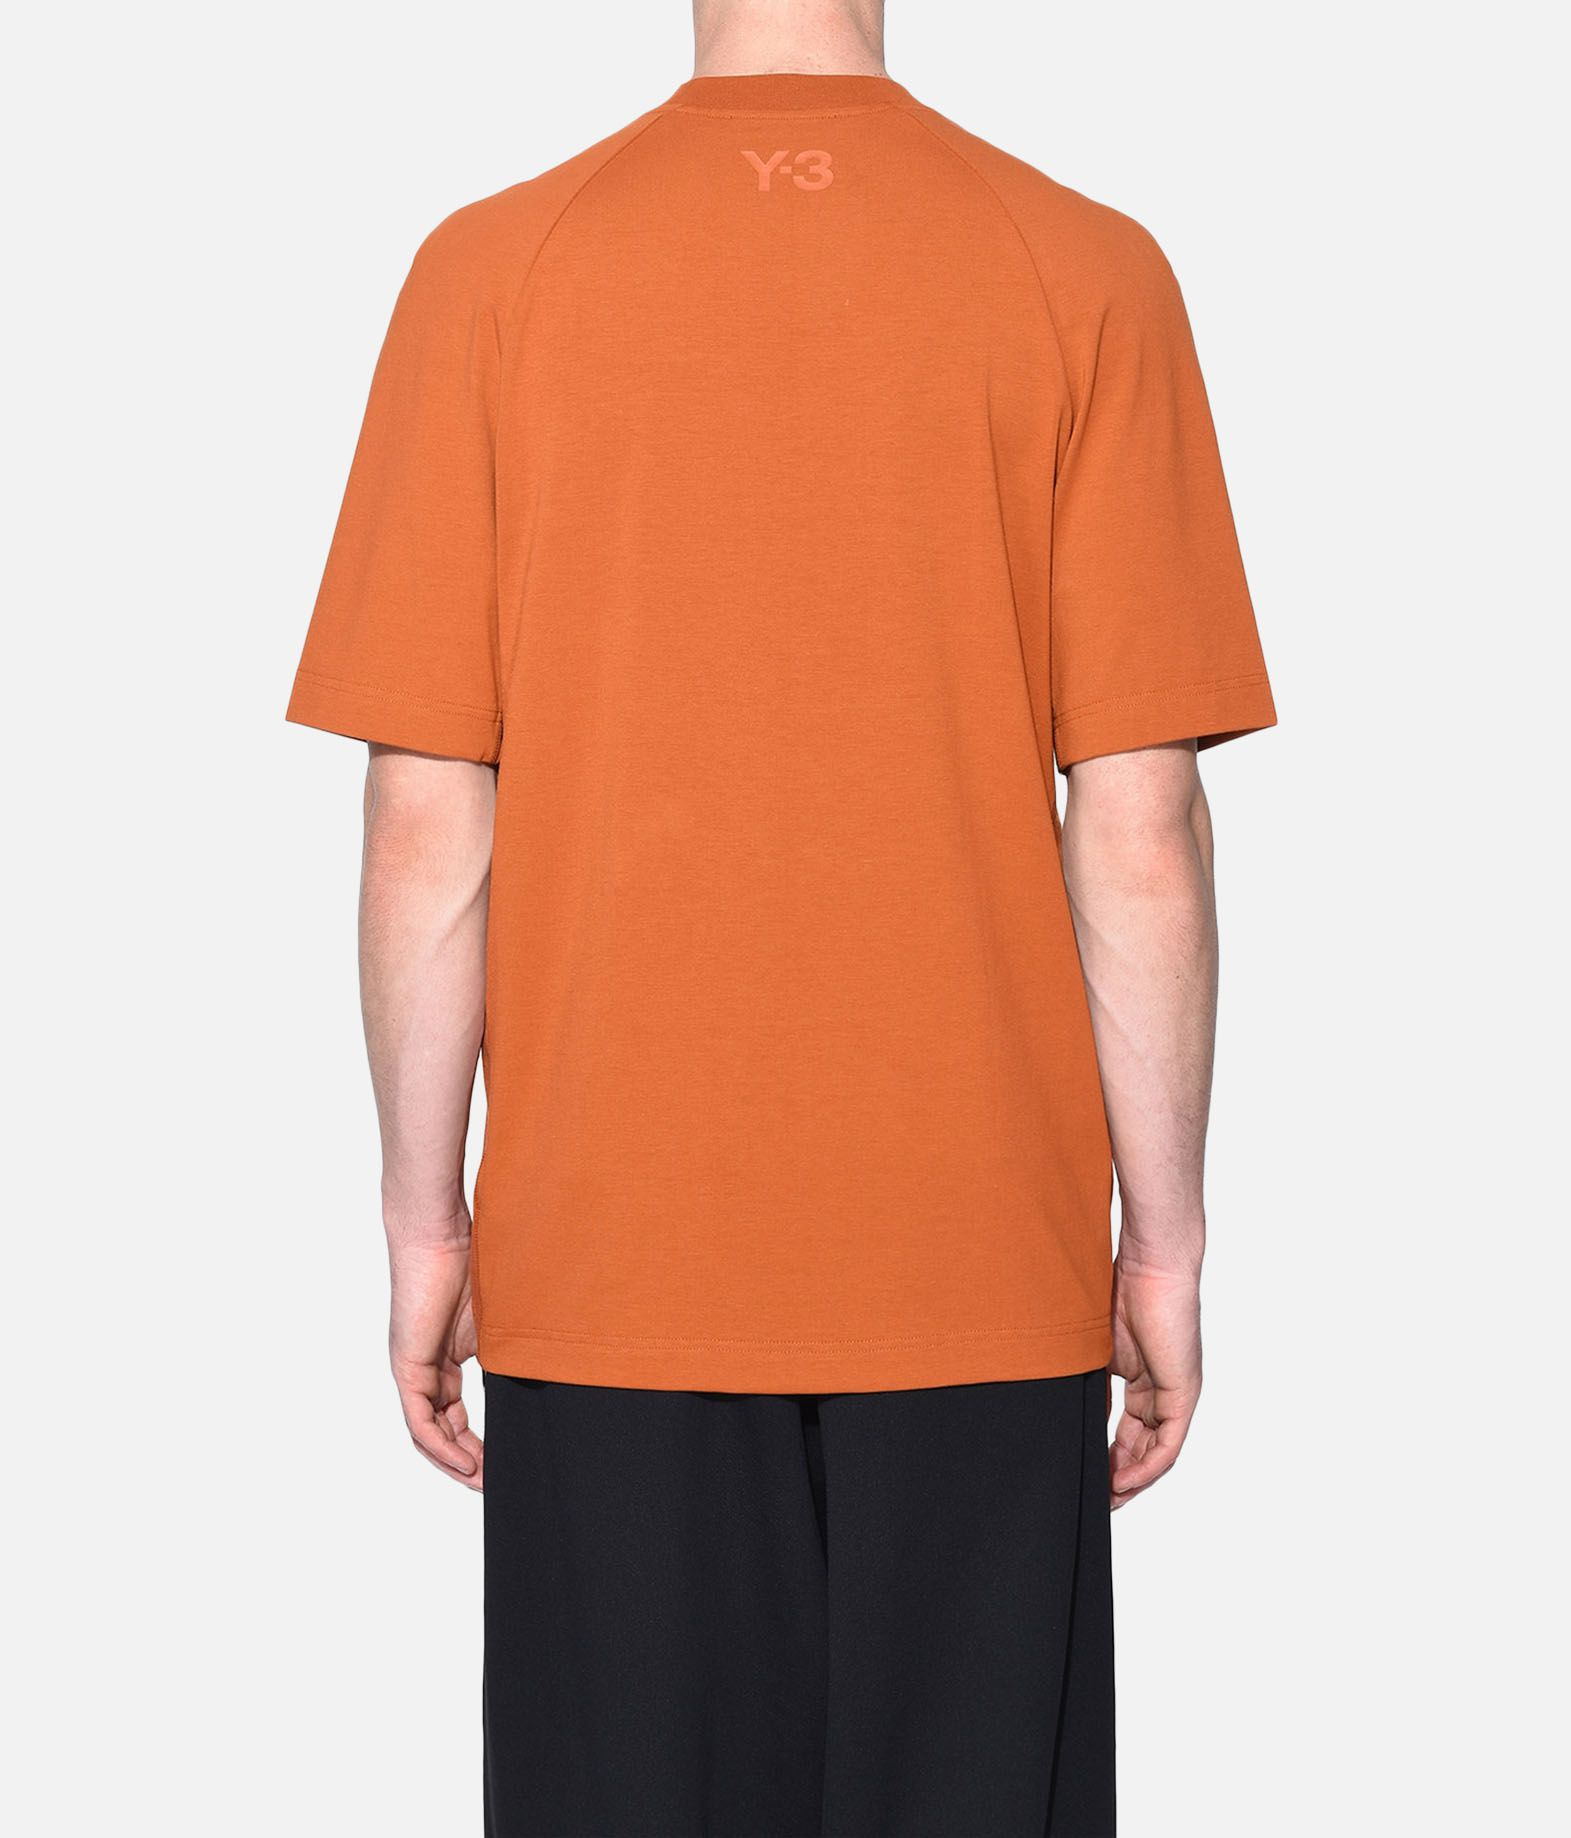 Y-3 Y-3 3-Stripes Tee Kurzärmliges T-shirt Herren d